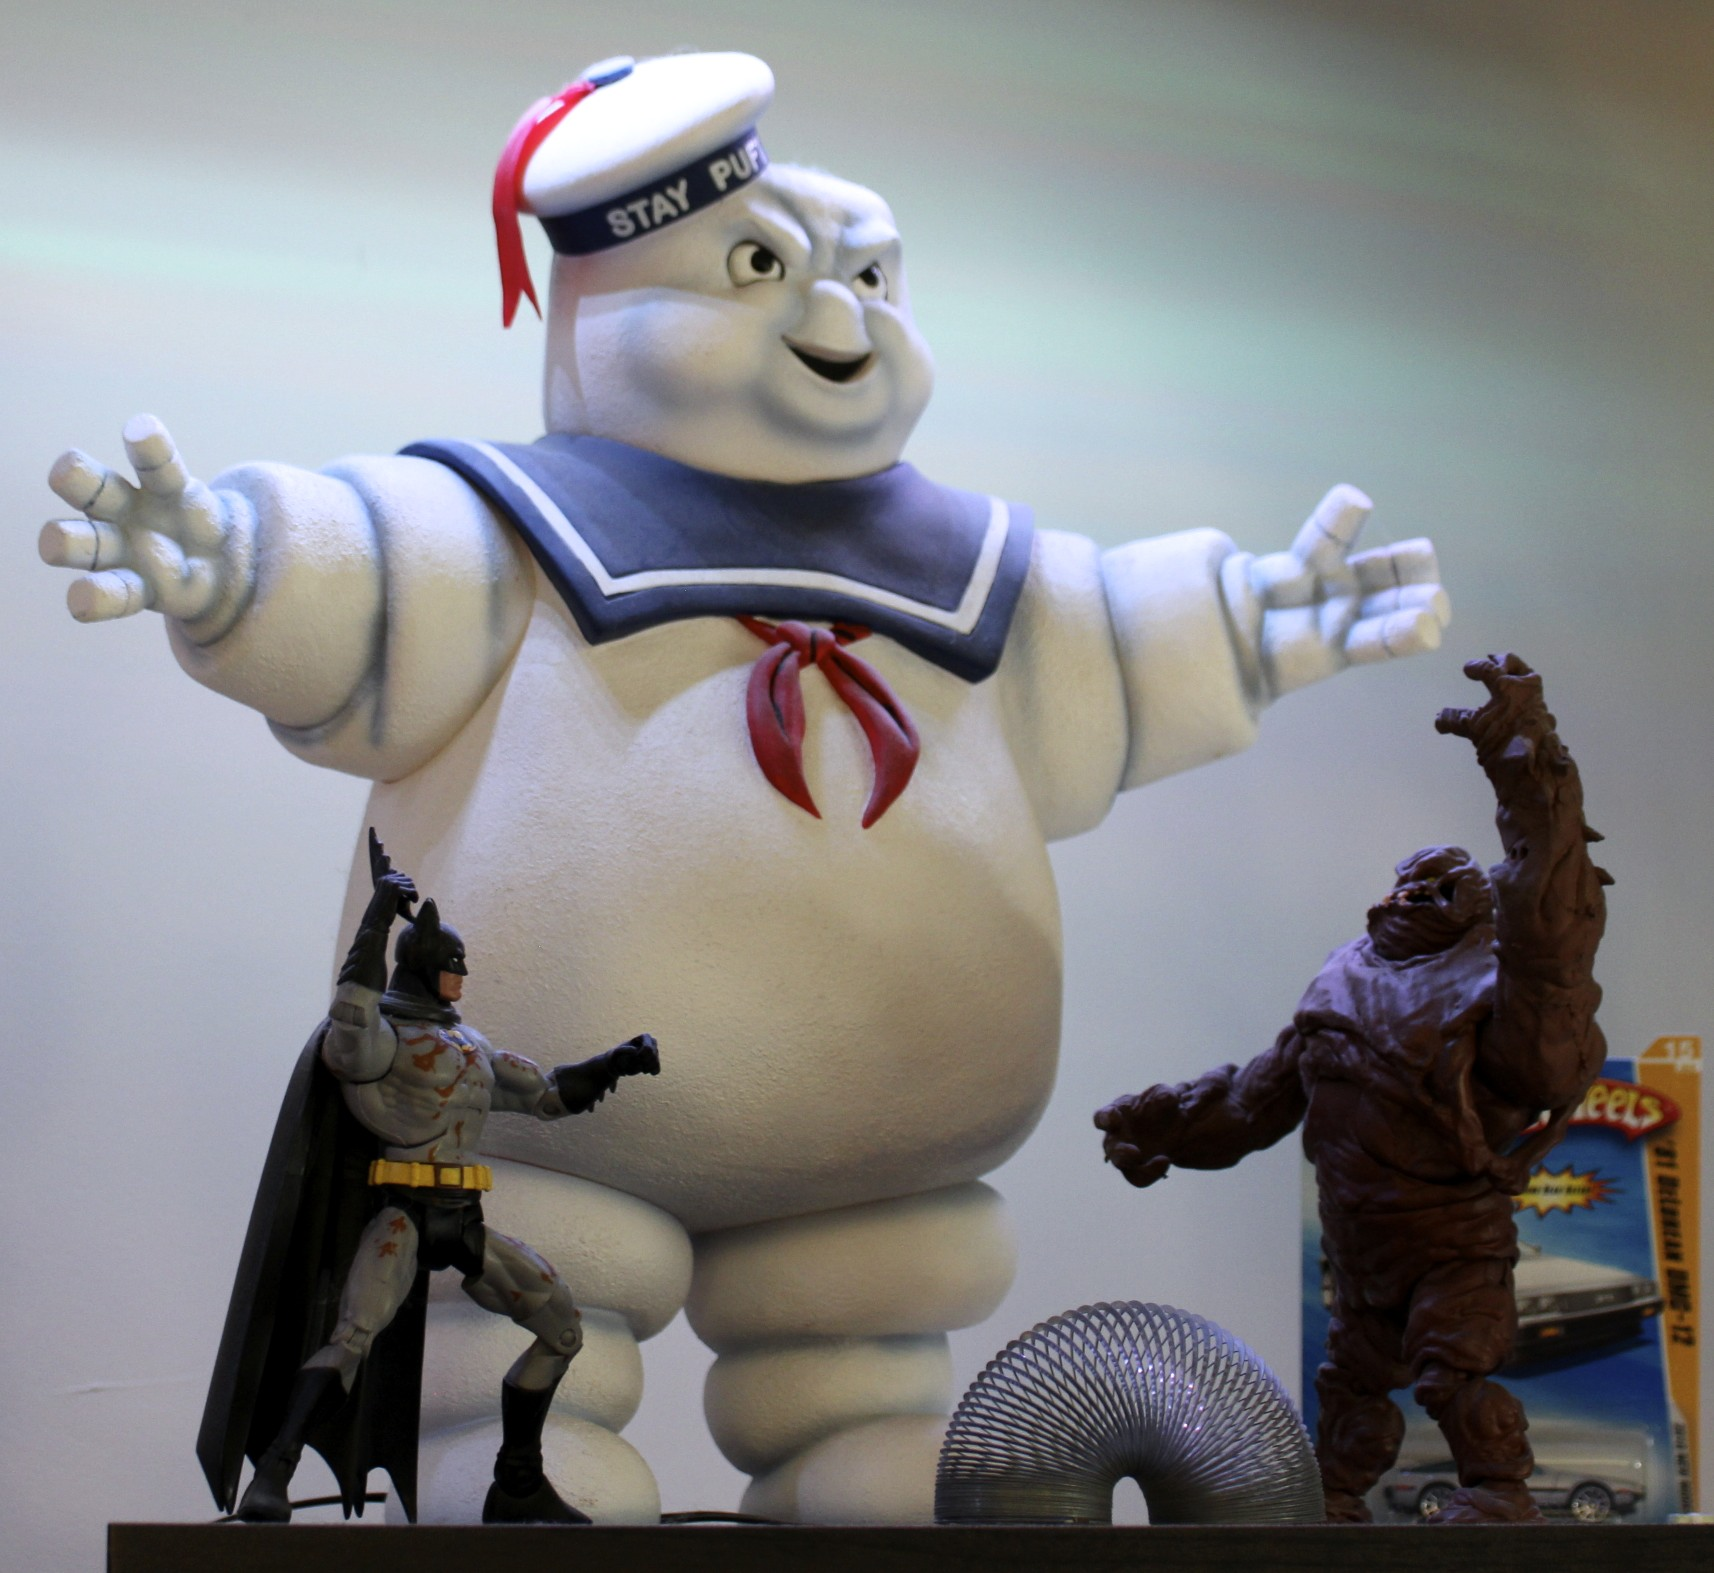 Ghostbusters  Stay-Puft Marshmallow Man, Batman vs. Clayface, and a Slinky.